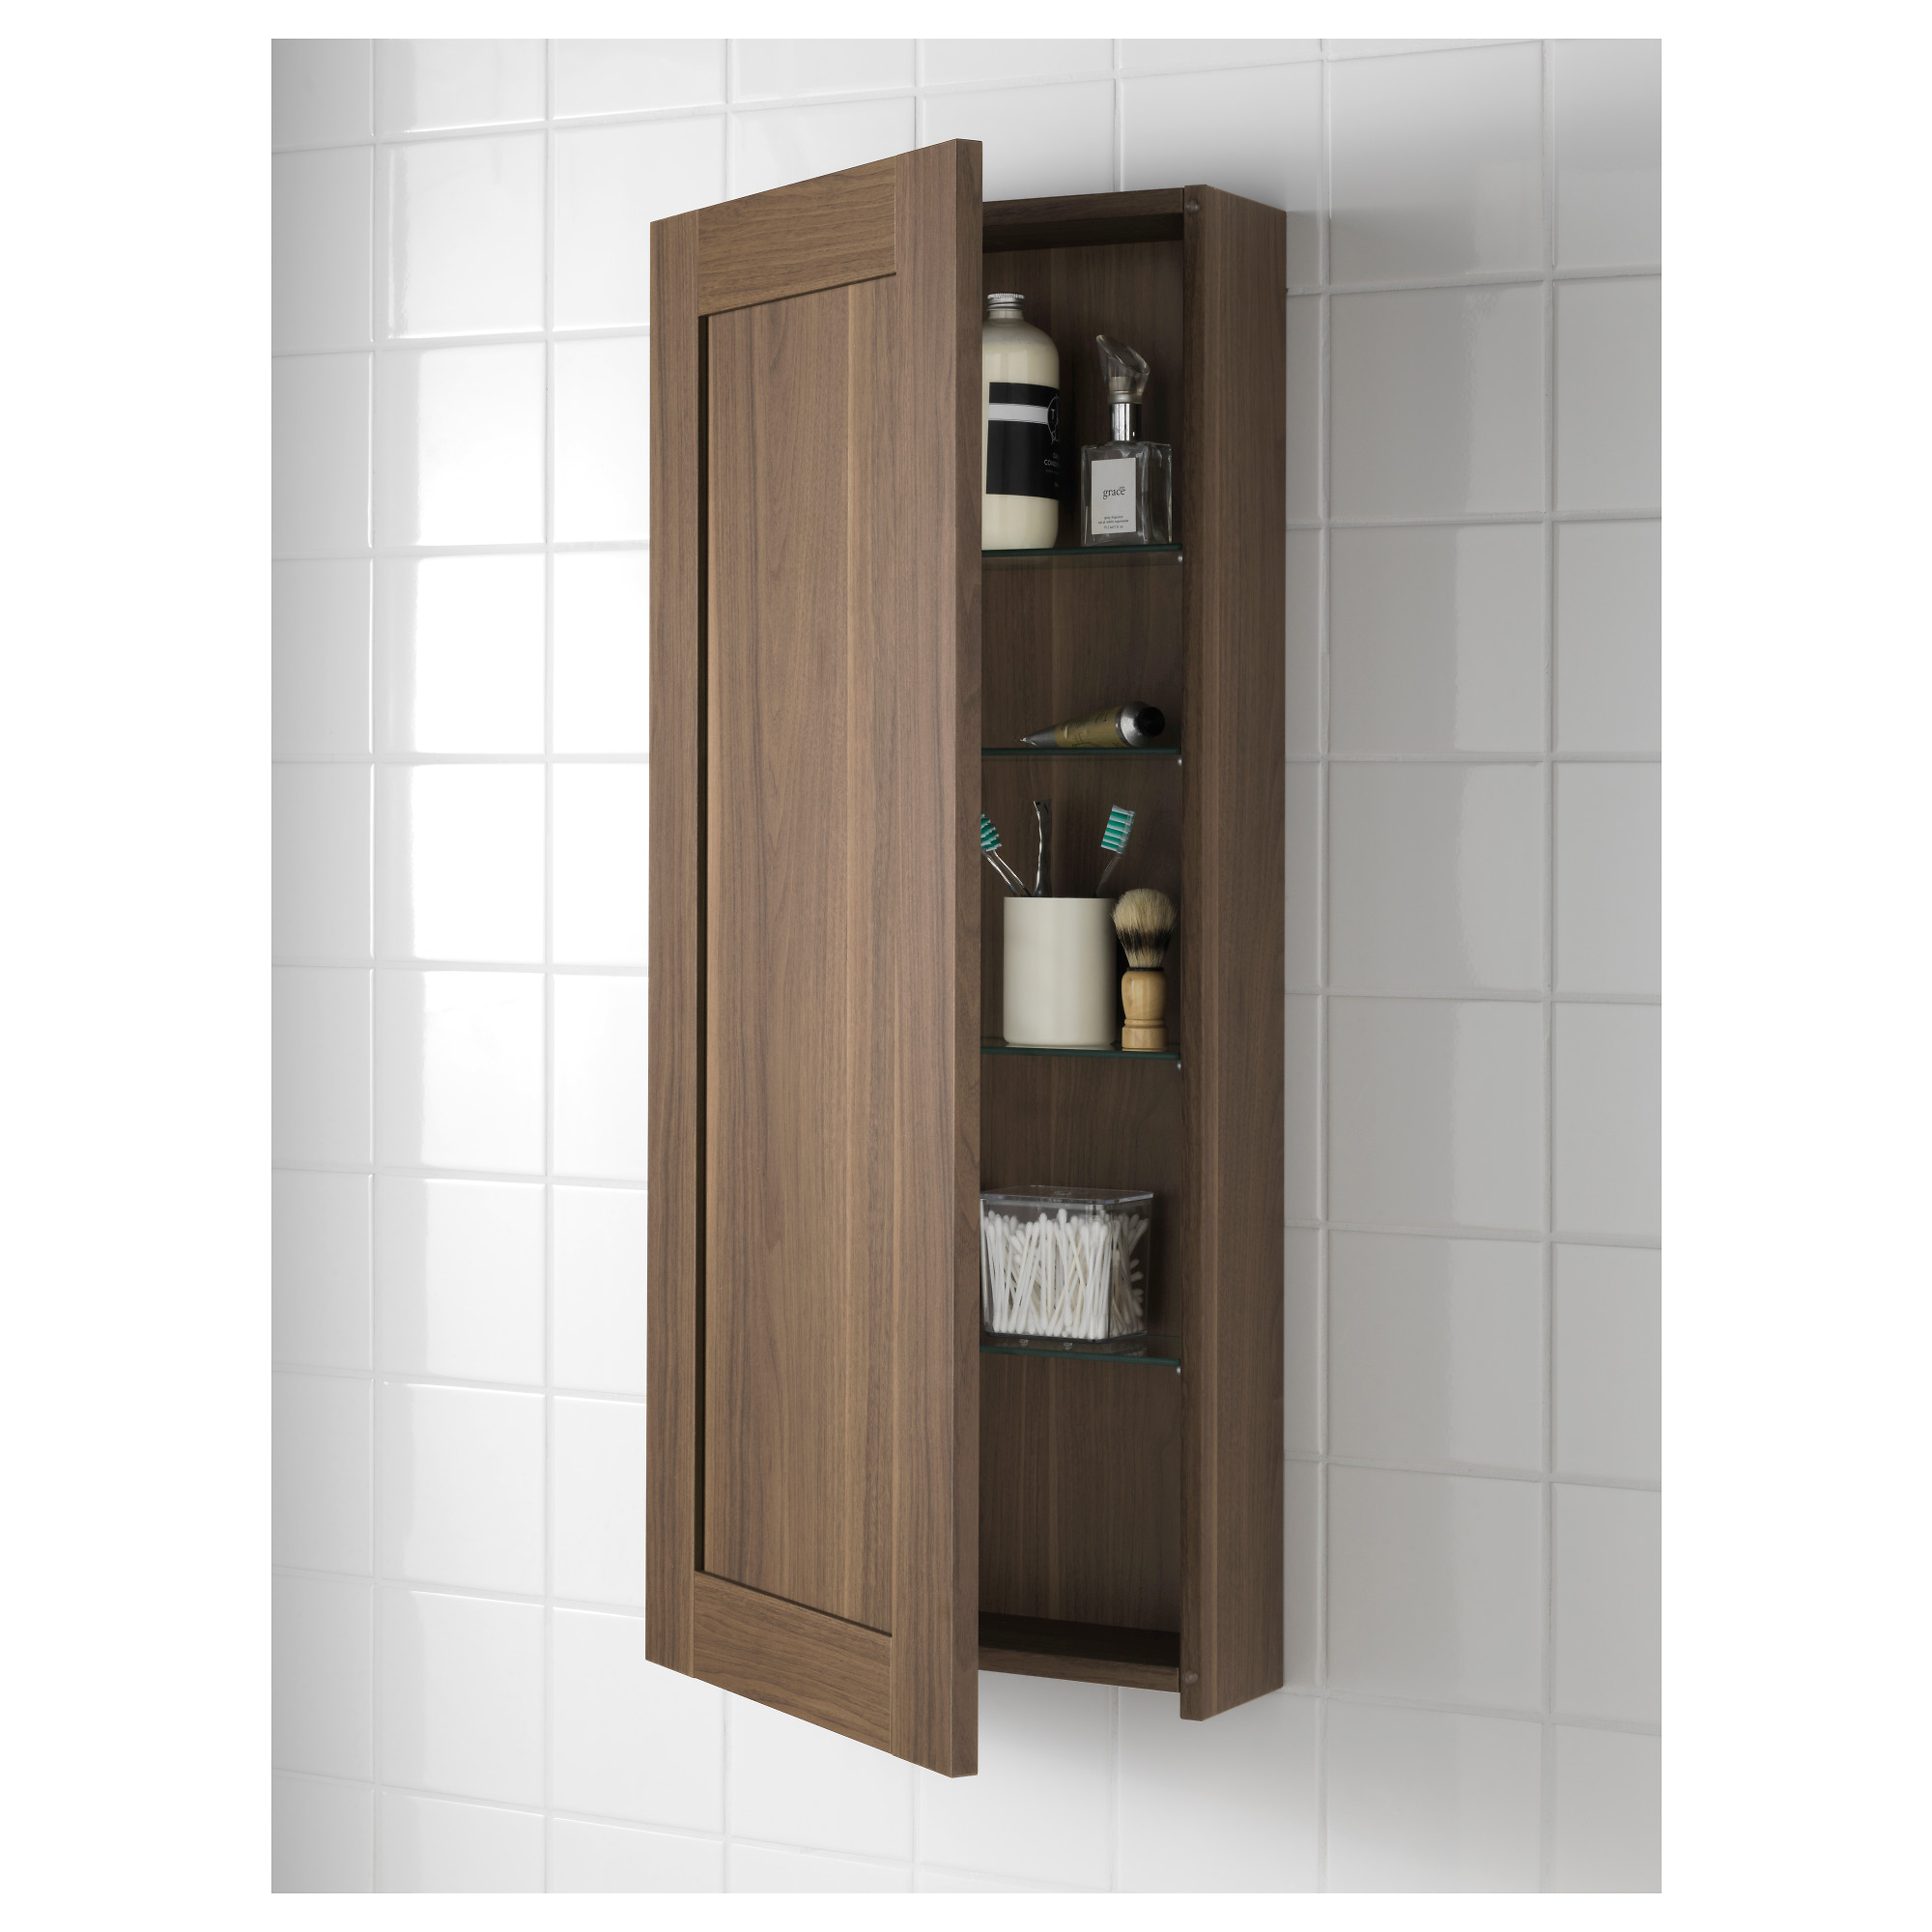 Ikea Bathroom Cabinet Doors Home Decorating Ideas House Designer